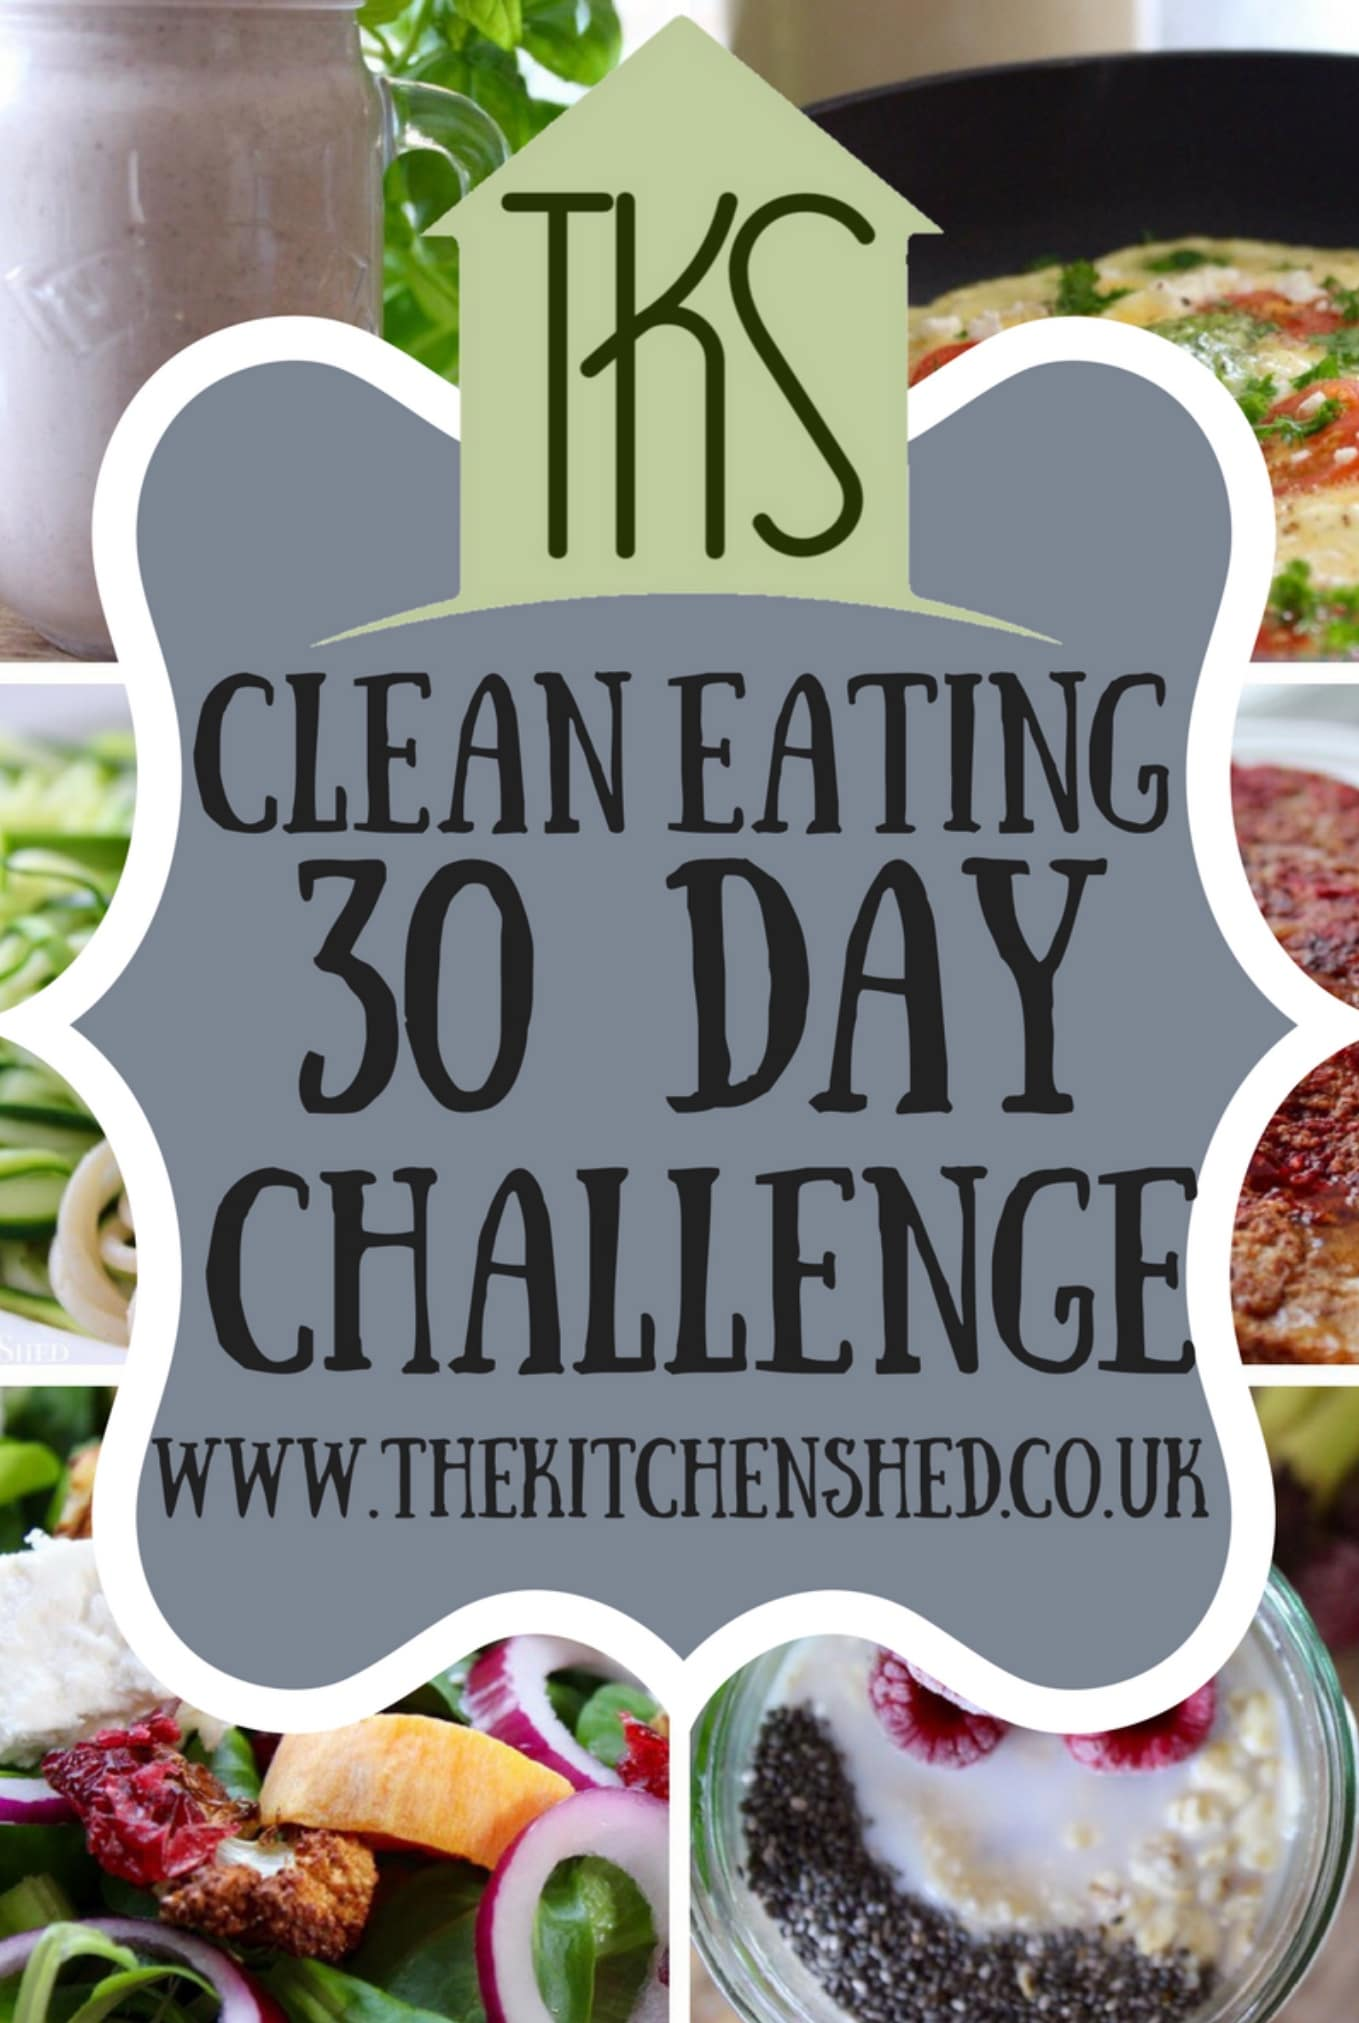 Clean eating 30 day challenge the kitchen shed charlie xox forumfinder Images